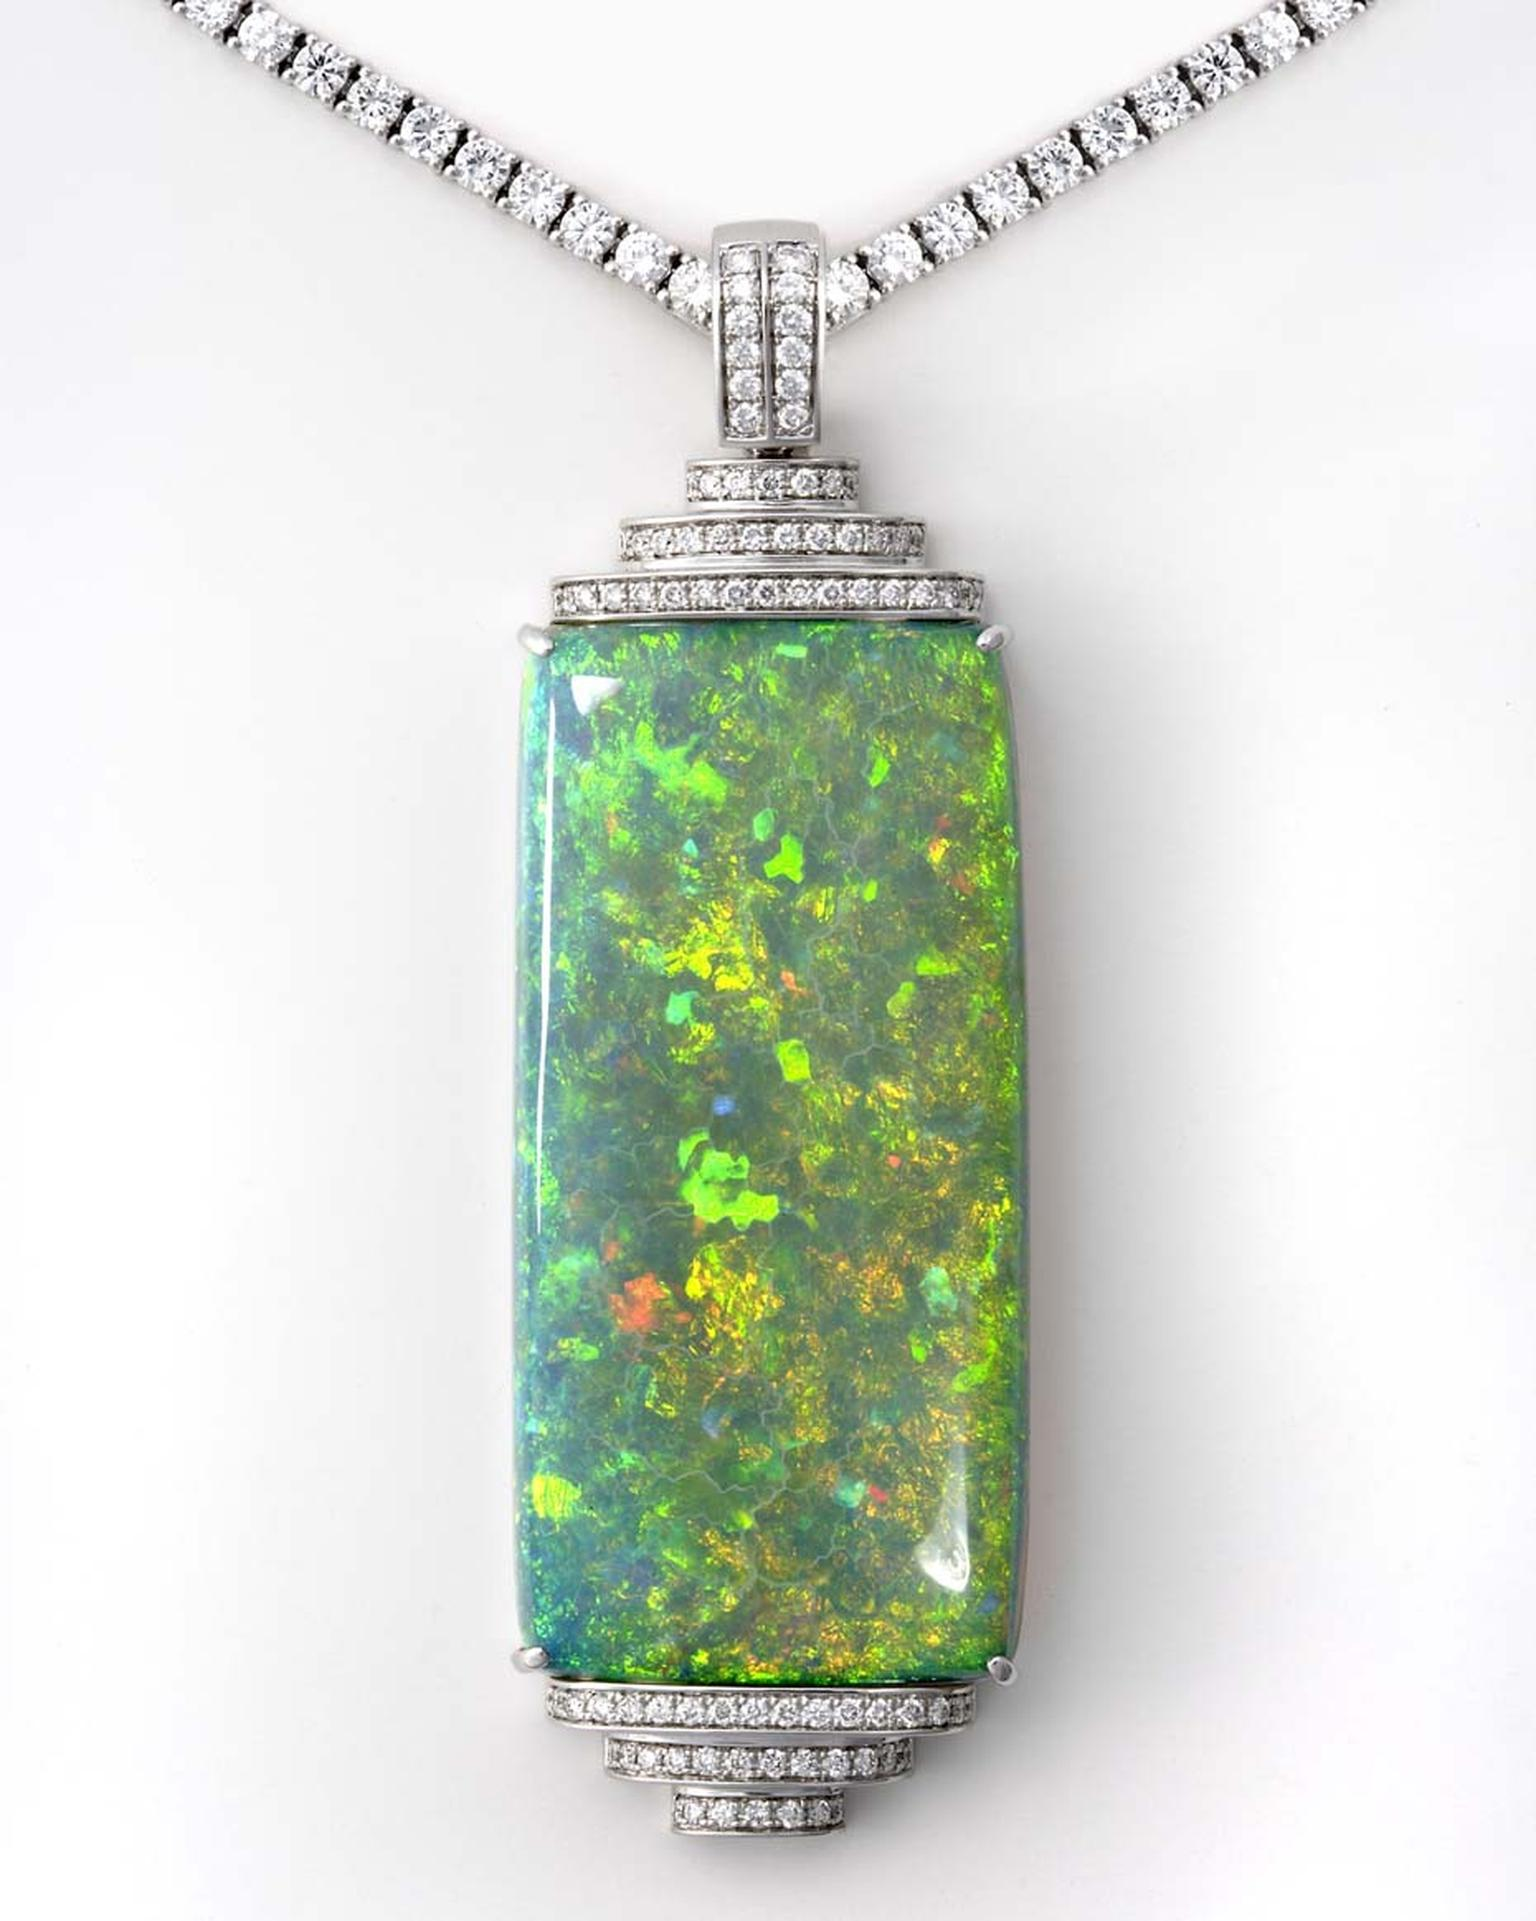 Coober Pedy opal pendant designed by Fiona Altmann of Altmann & Cherny, set with a 121ct opal in white gold with diamonds.